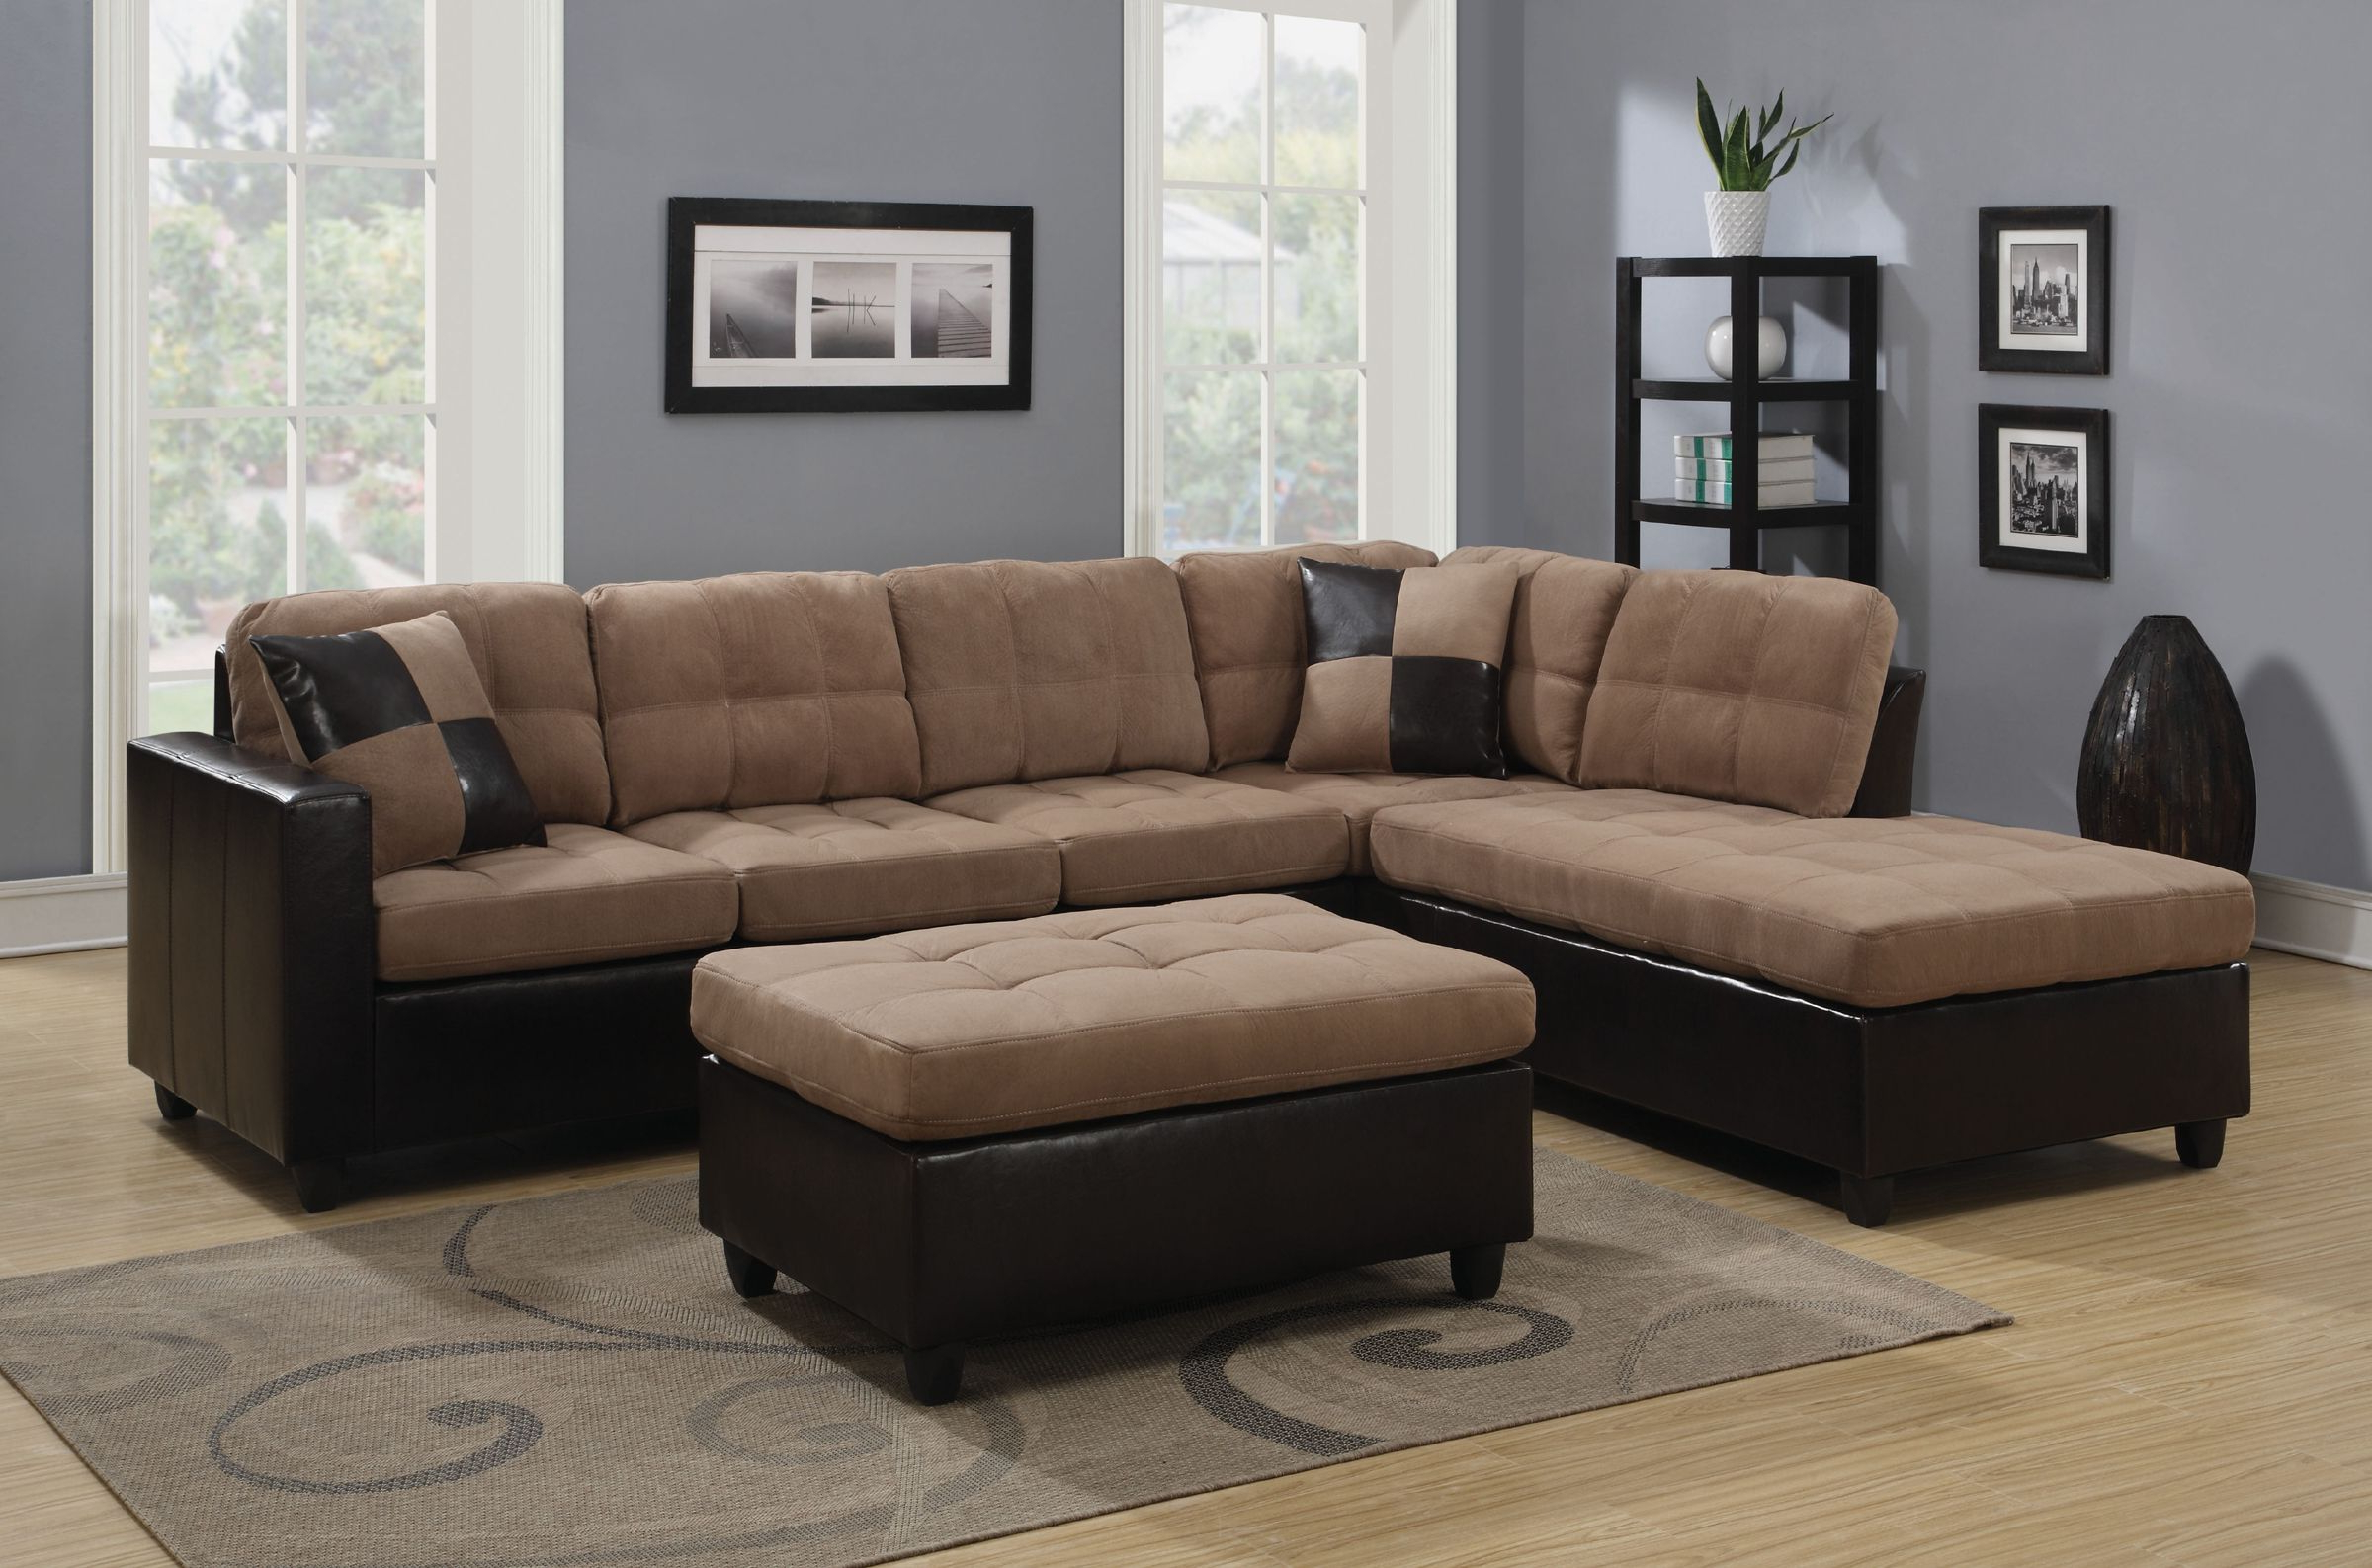 Reversible Tan Microfiber Sectional Sofa With Chaise Set Within Most Recently Released Clifton Reversible Sectional Sofas With Pillows (View 5 of 20)